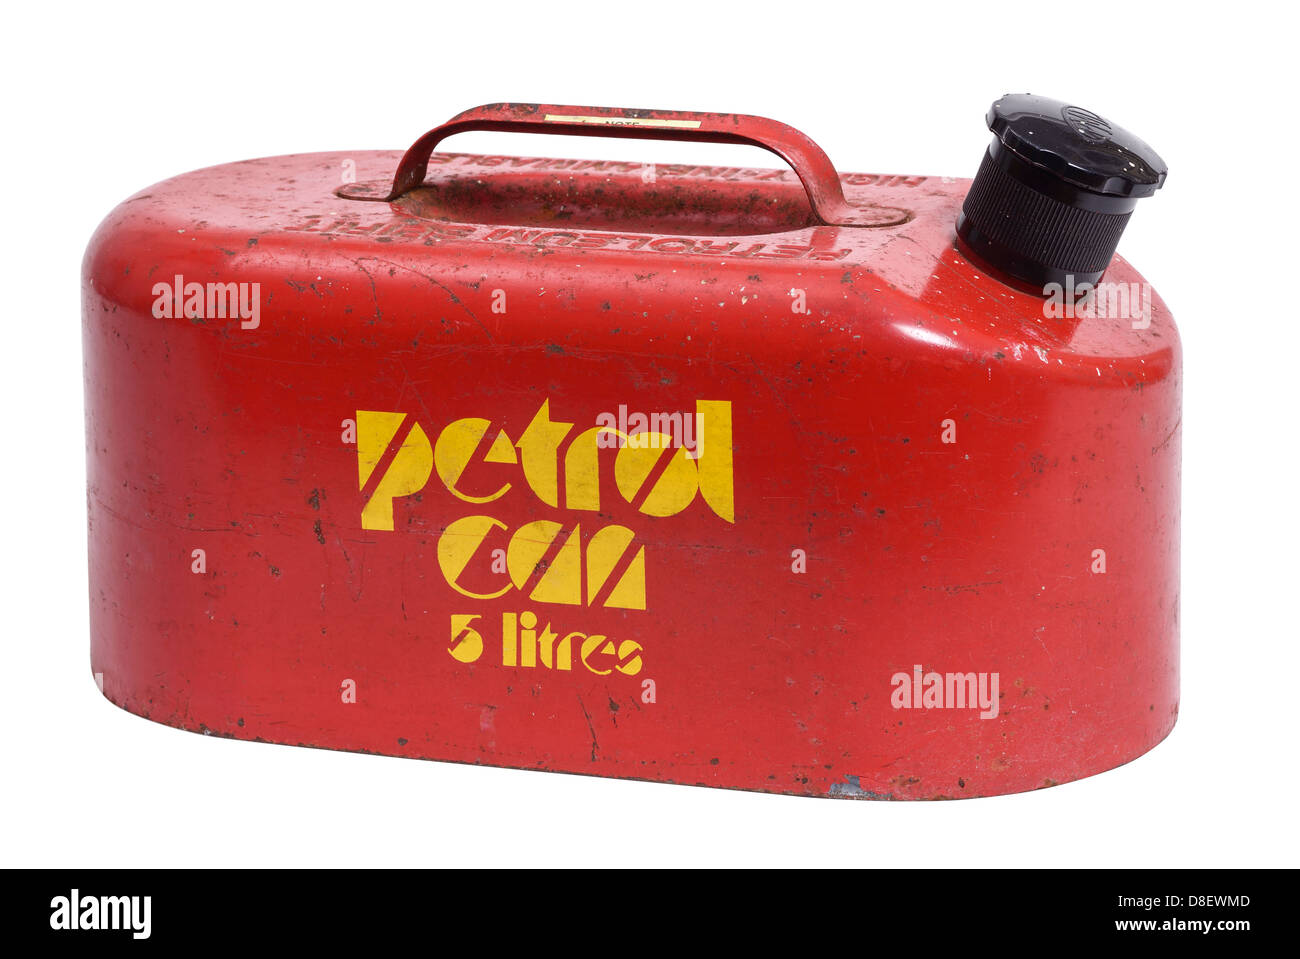 Red metal petrol can - Stock Image